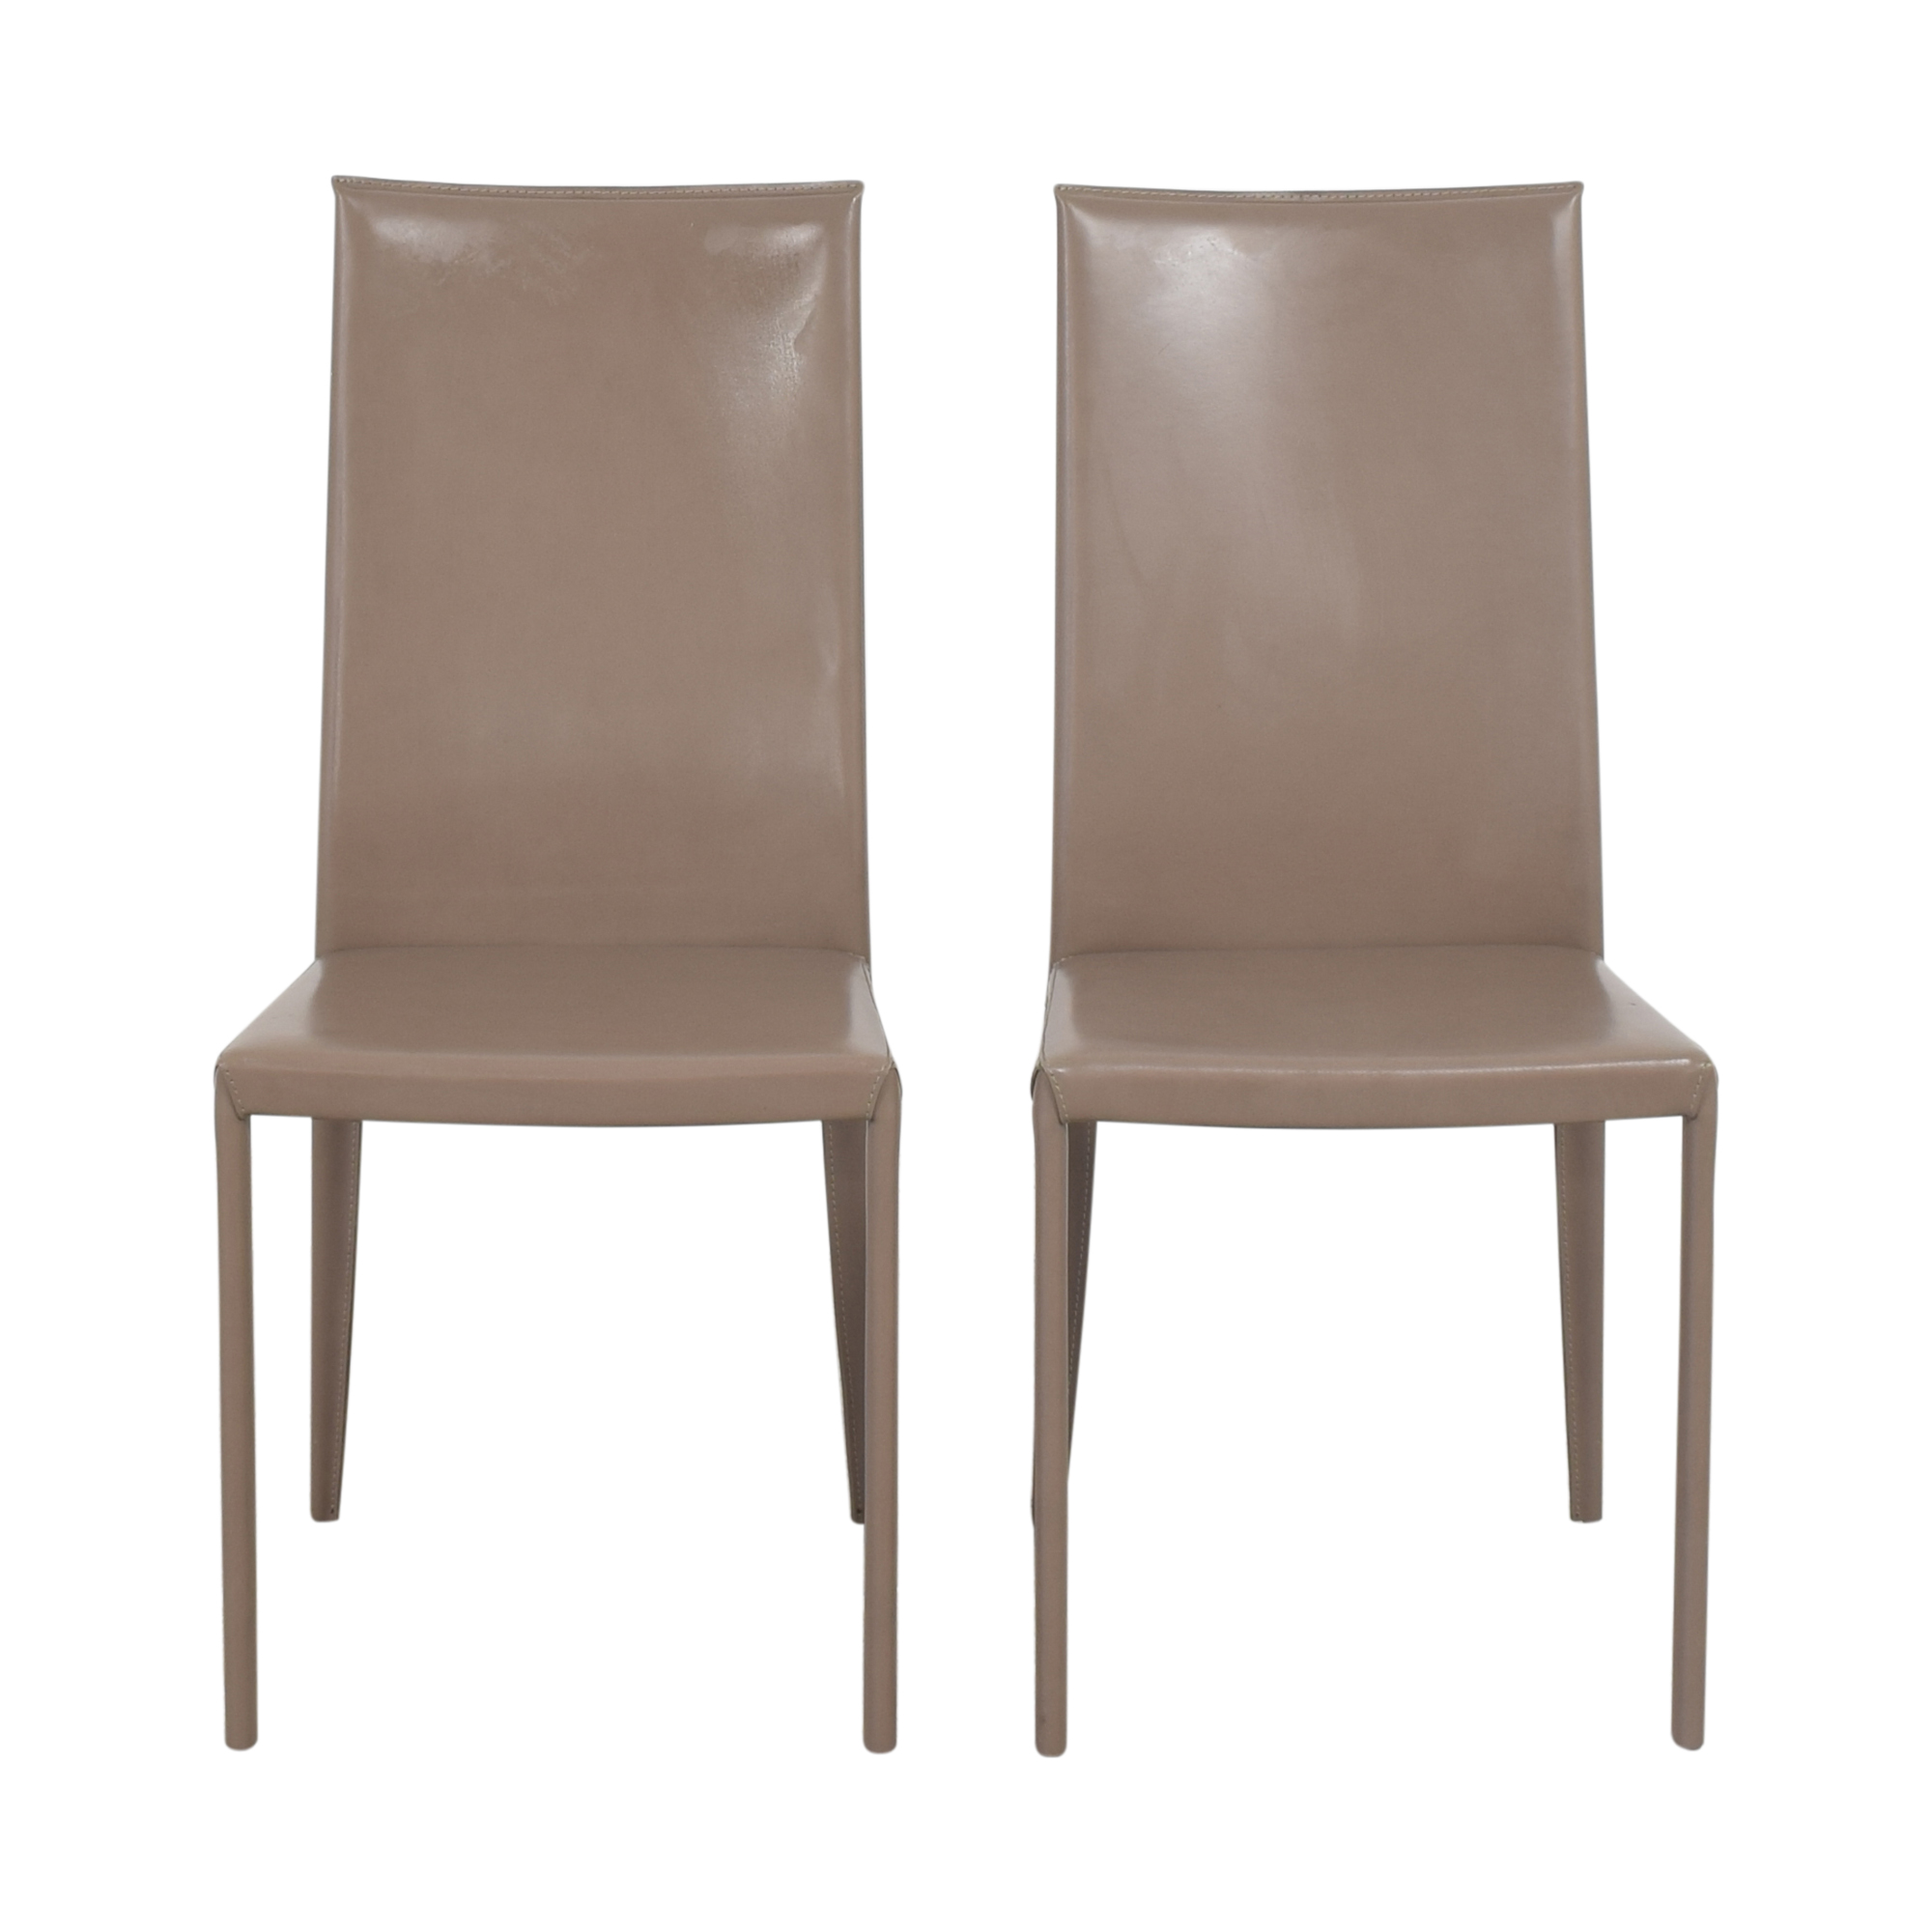 buy Roche Bobois Holly Dining Chairs by Frag Frag